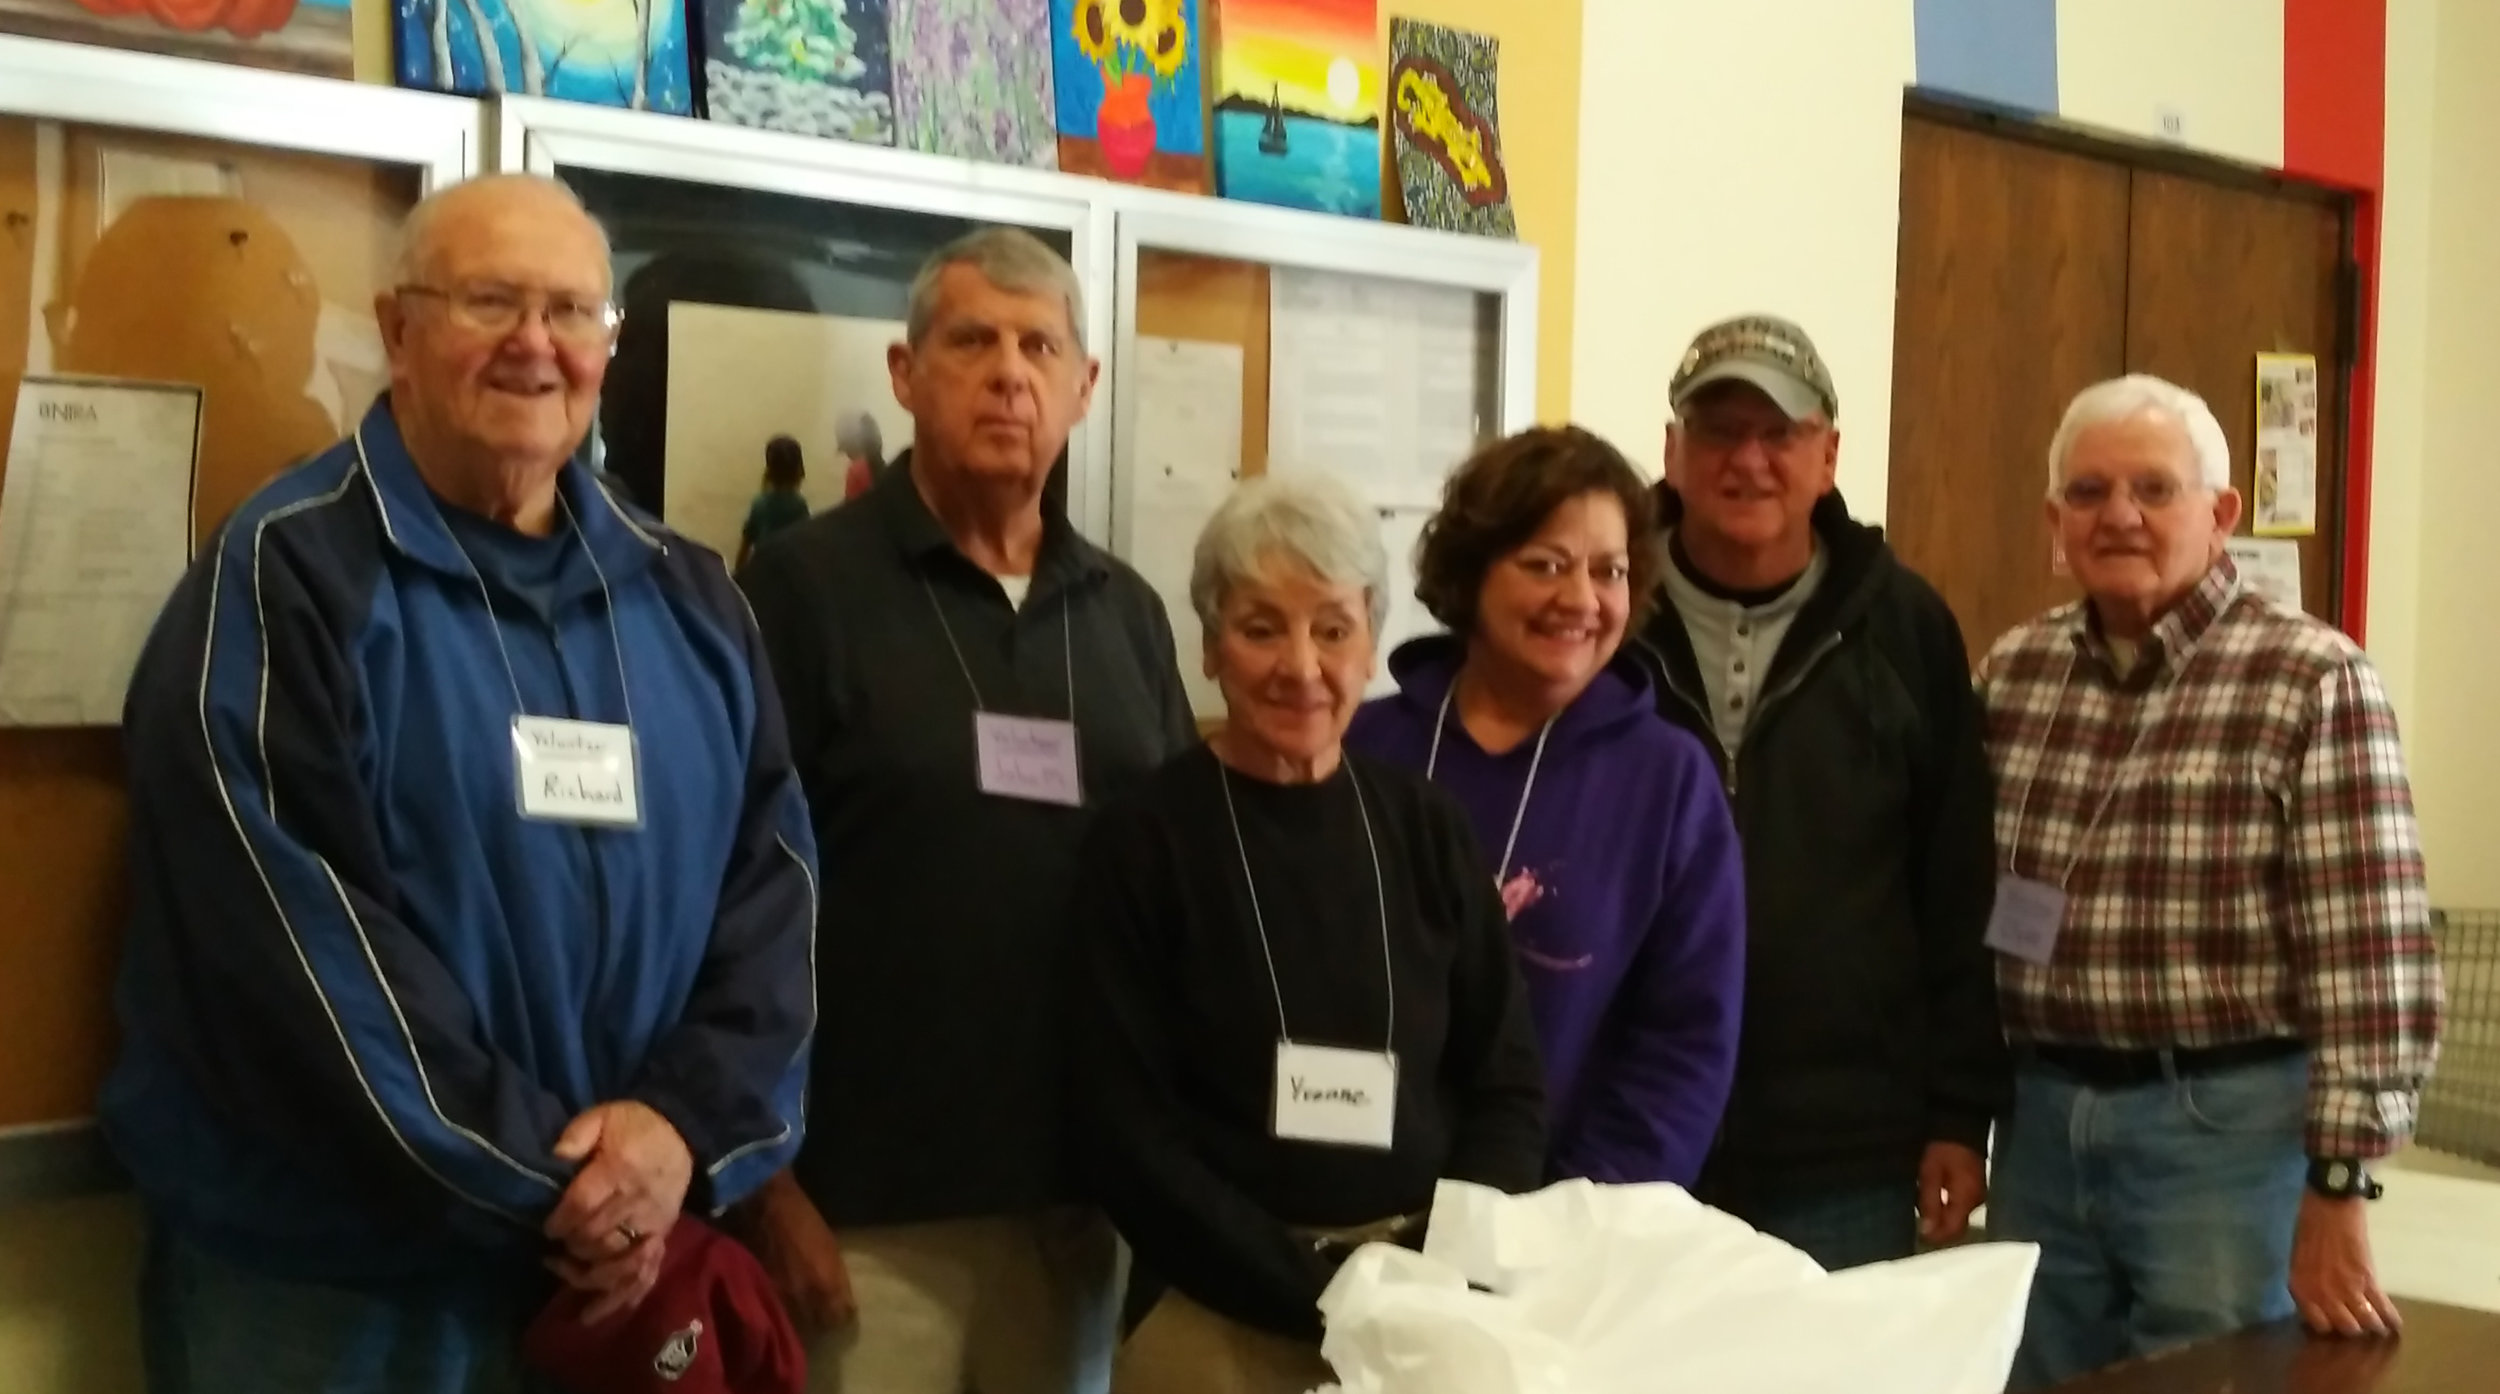 Dutilh's volunteer team at the Center for Hope